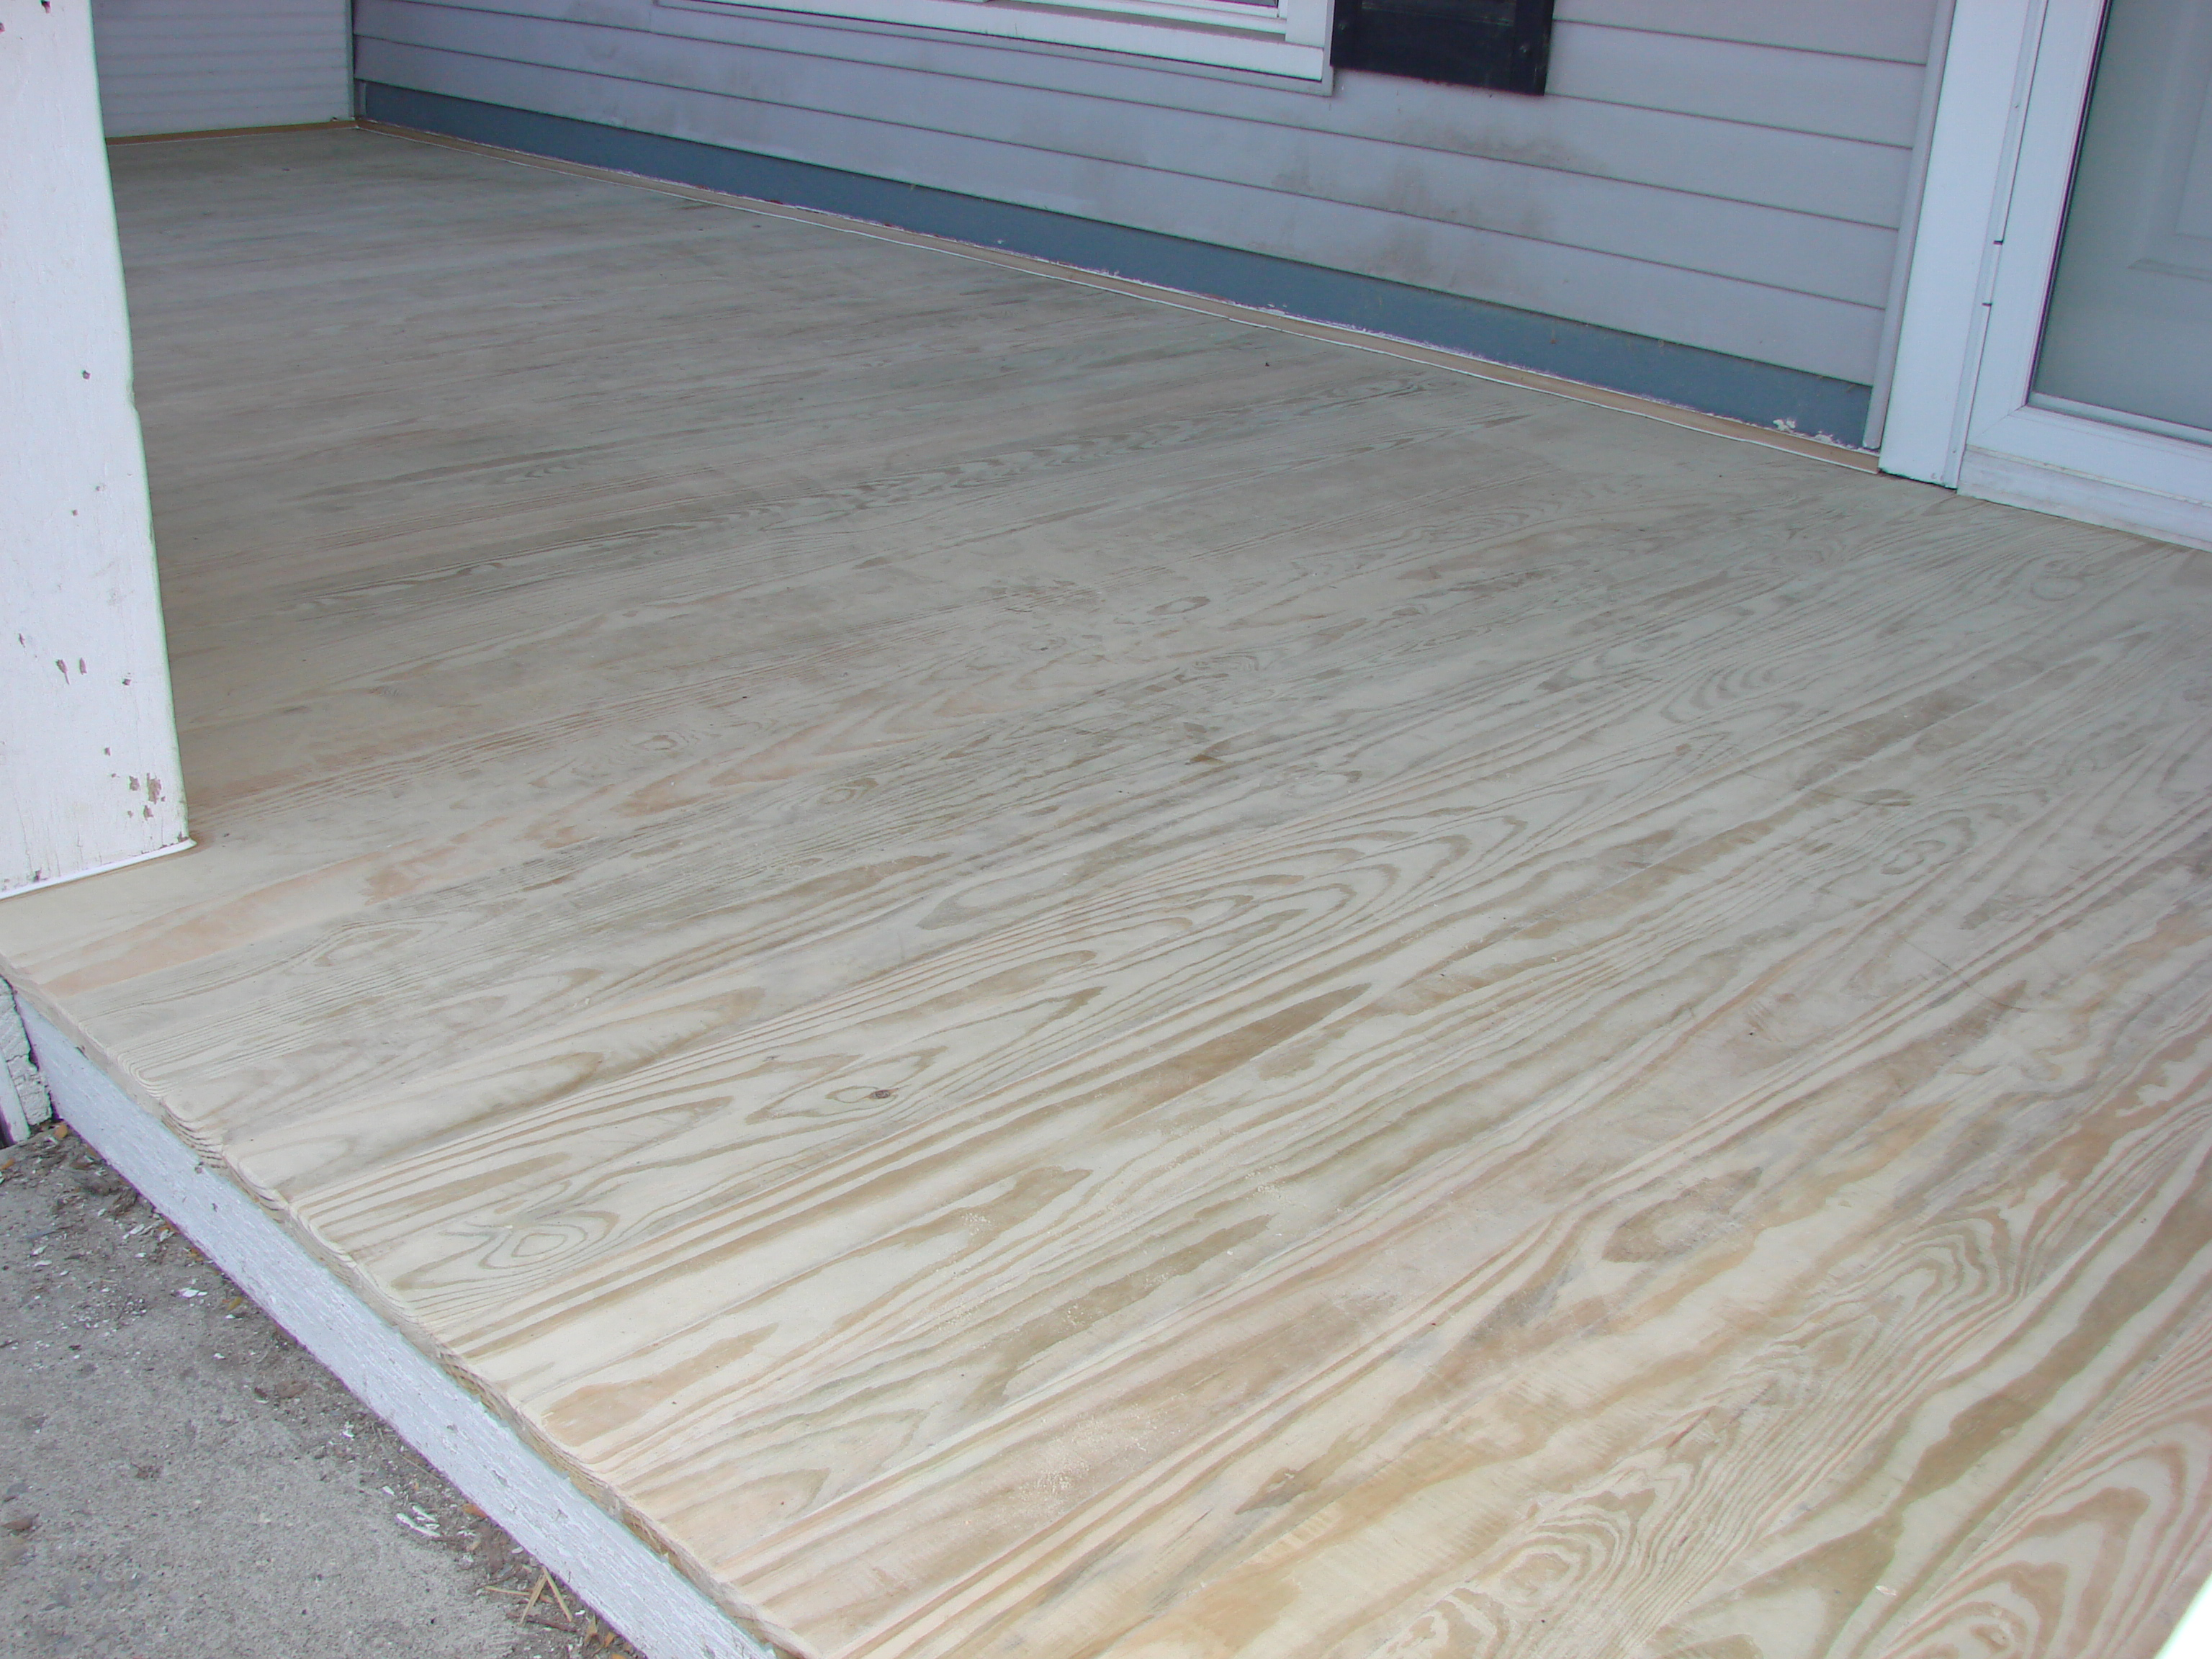 Treated wood porch floor replacement bryan ohio for Porch flooring